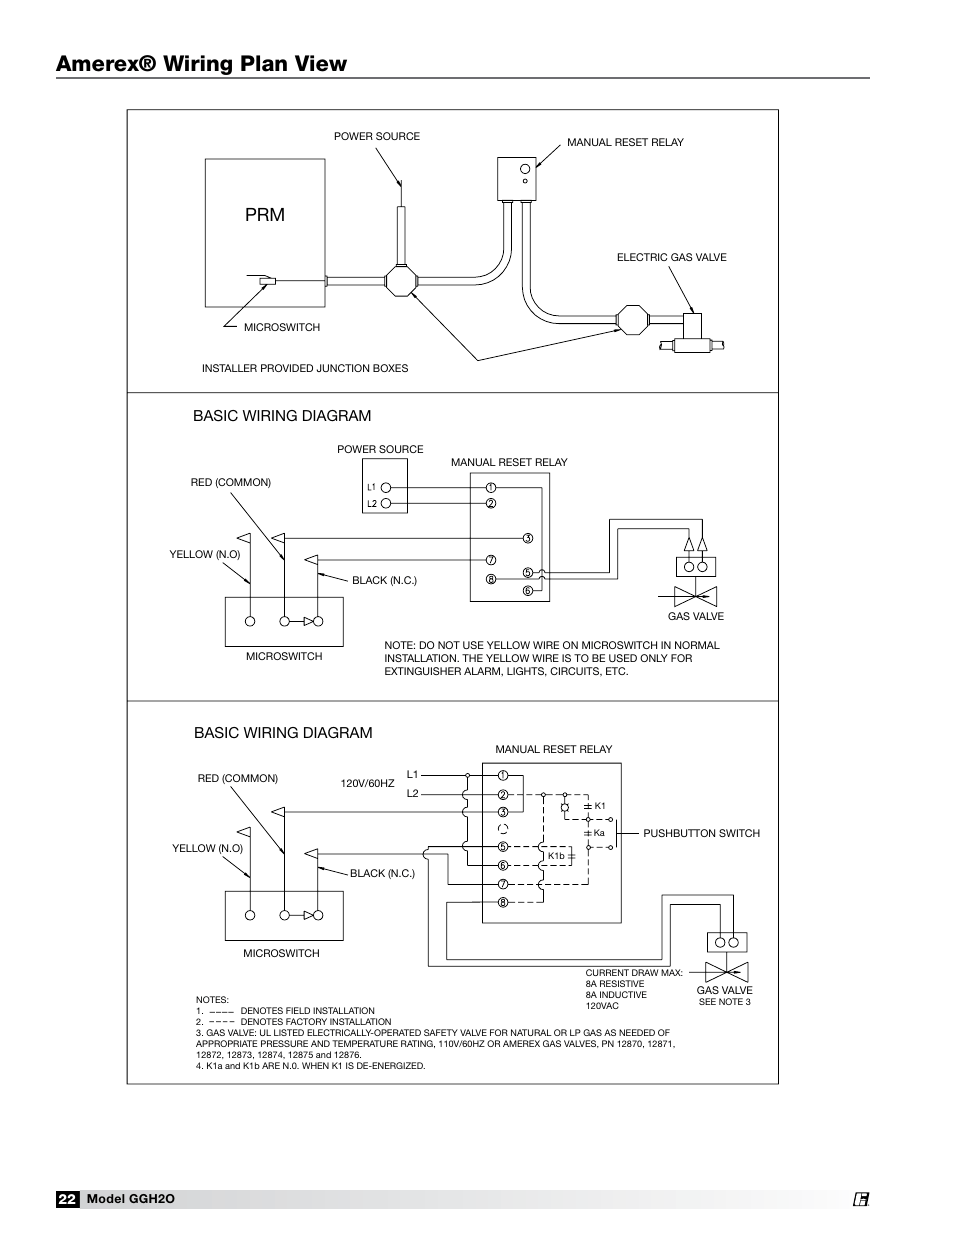 medium resolution of amerex wiring plan view basic wiring diagram greenheck fan grease grabber h2o auto cleaning hood ggh20 user manual page 22 28